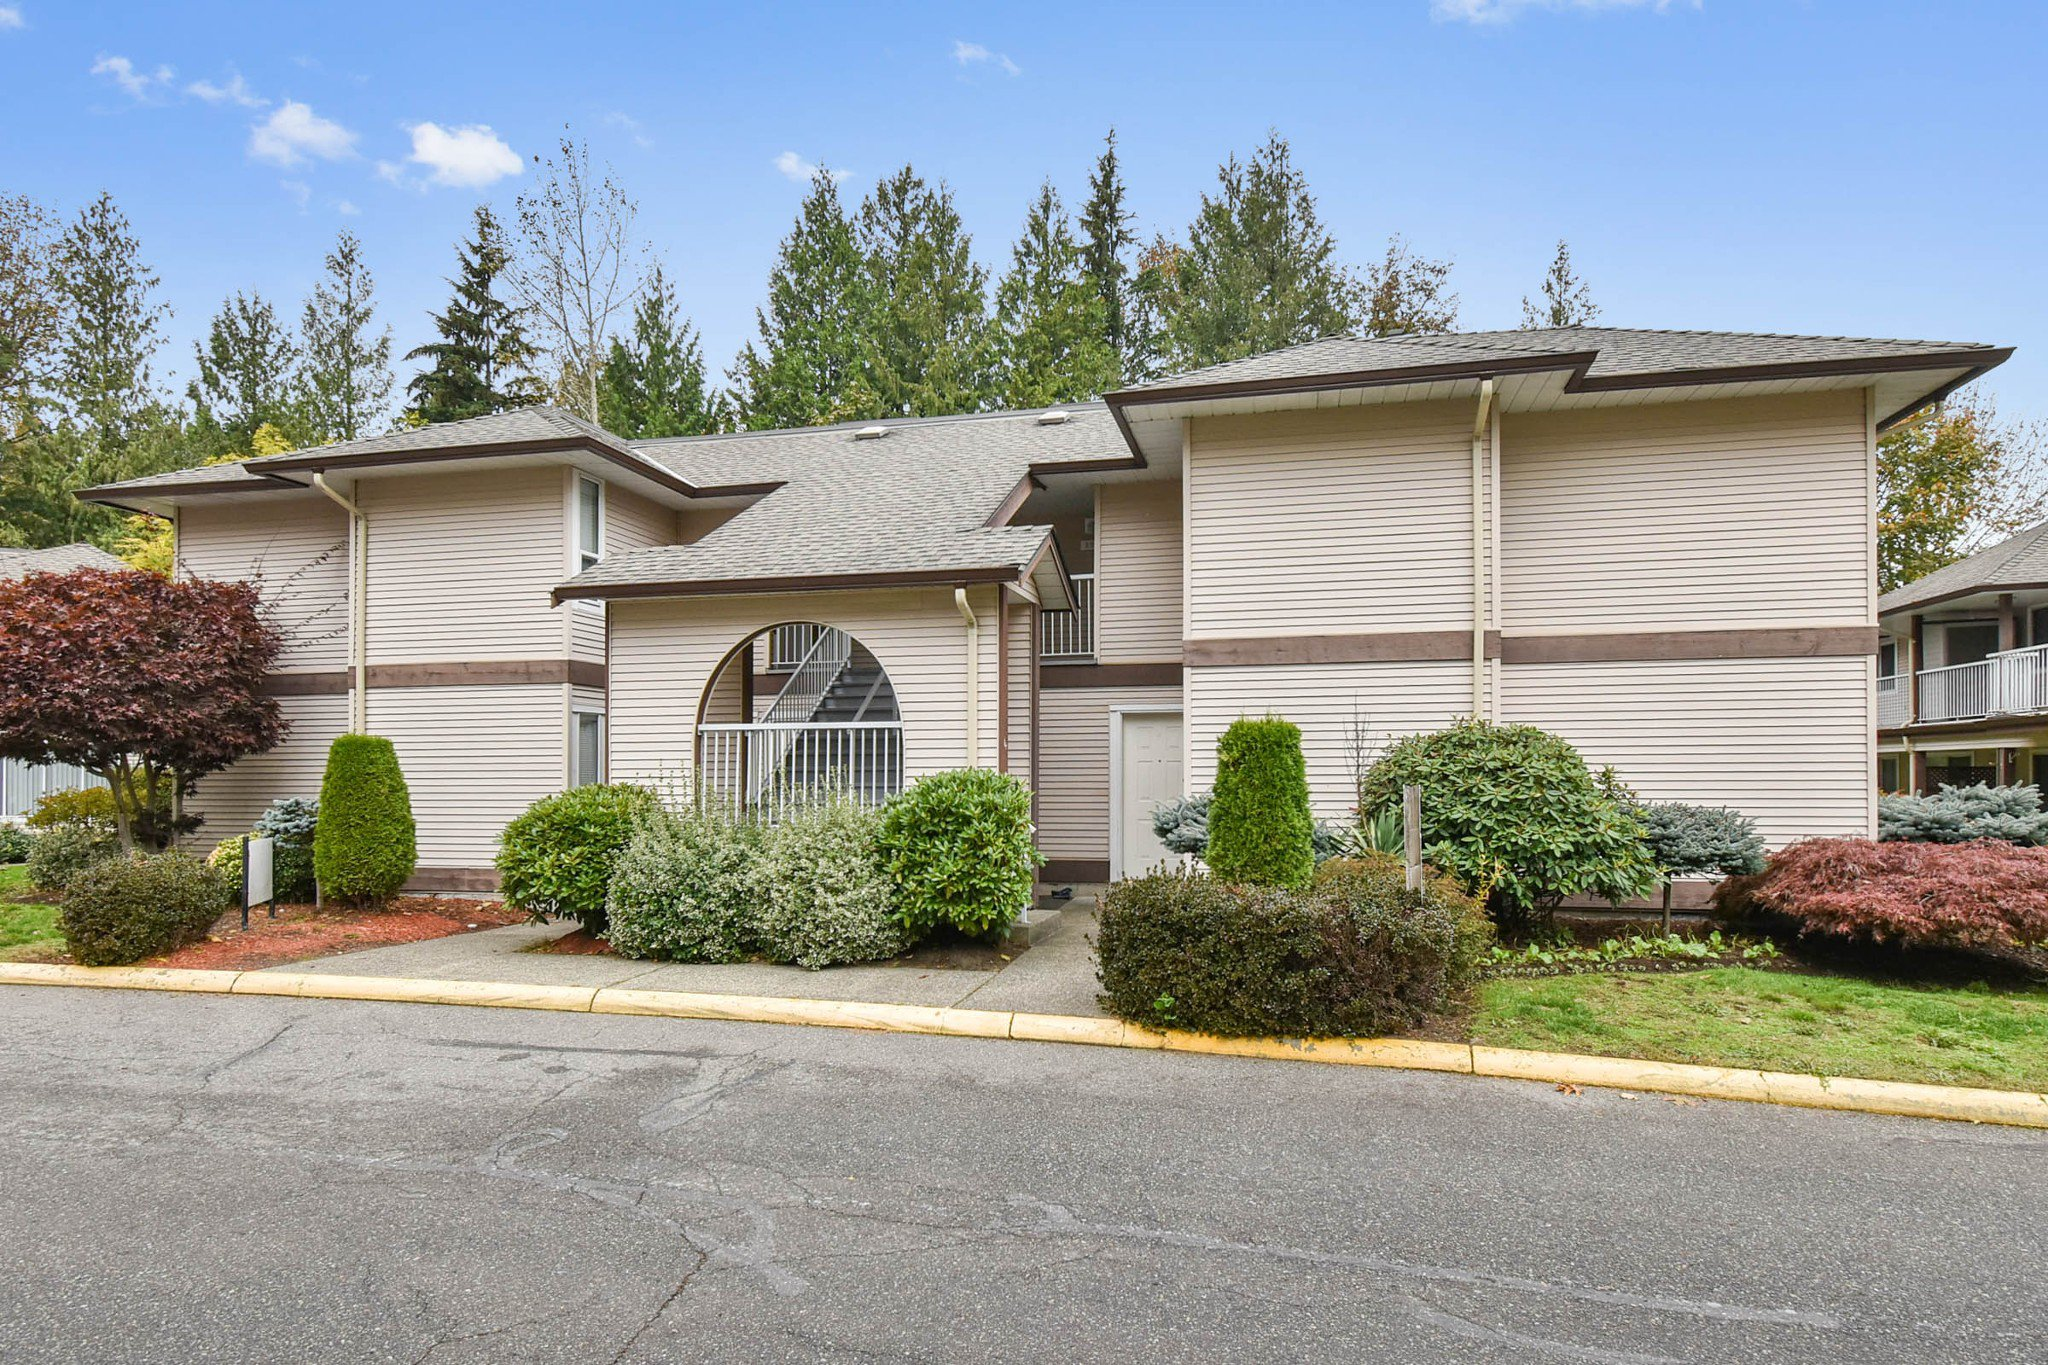 Main Photo: 308 1750 McKenzie Road in Abbotsford: Central Abbotsford Townhouse for sale : MLS®# R2513360